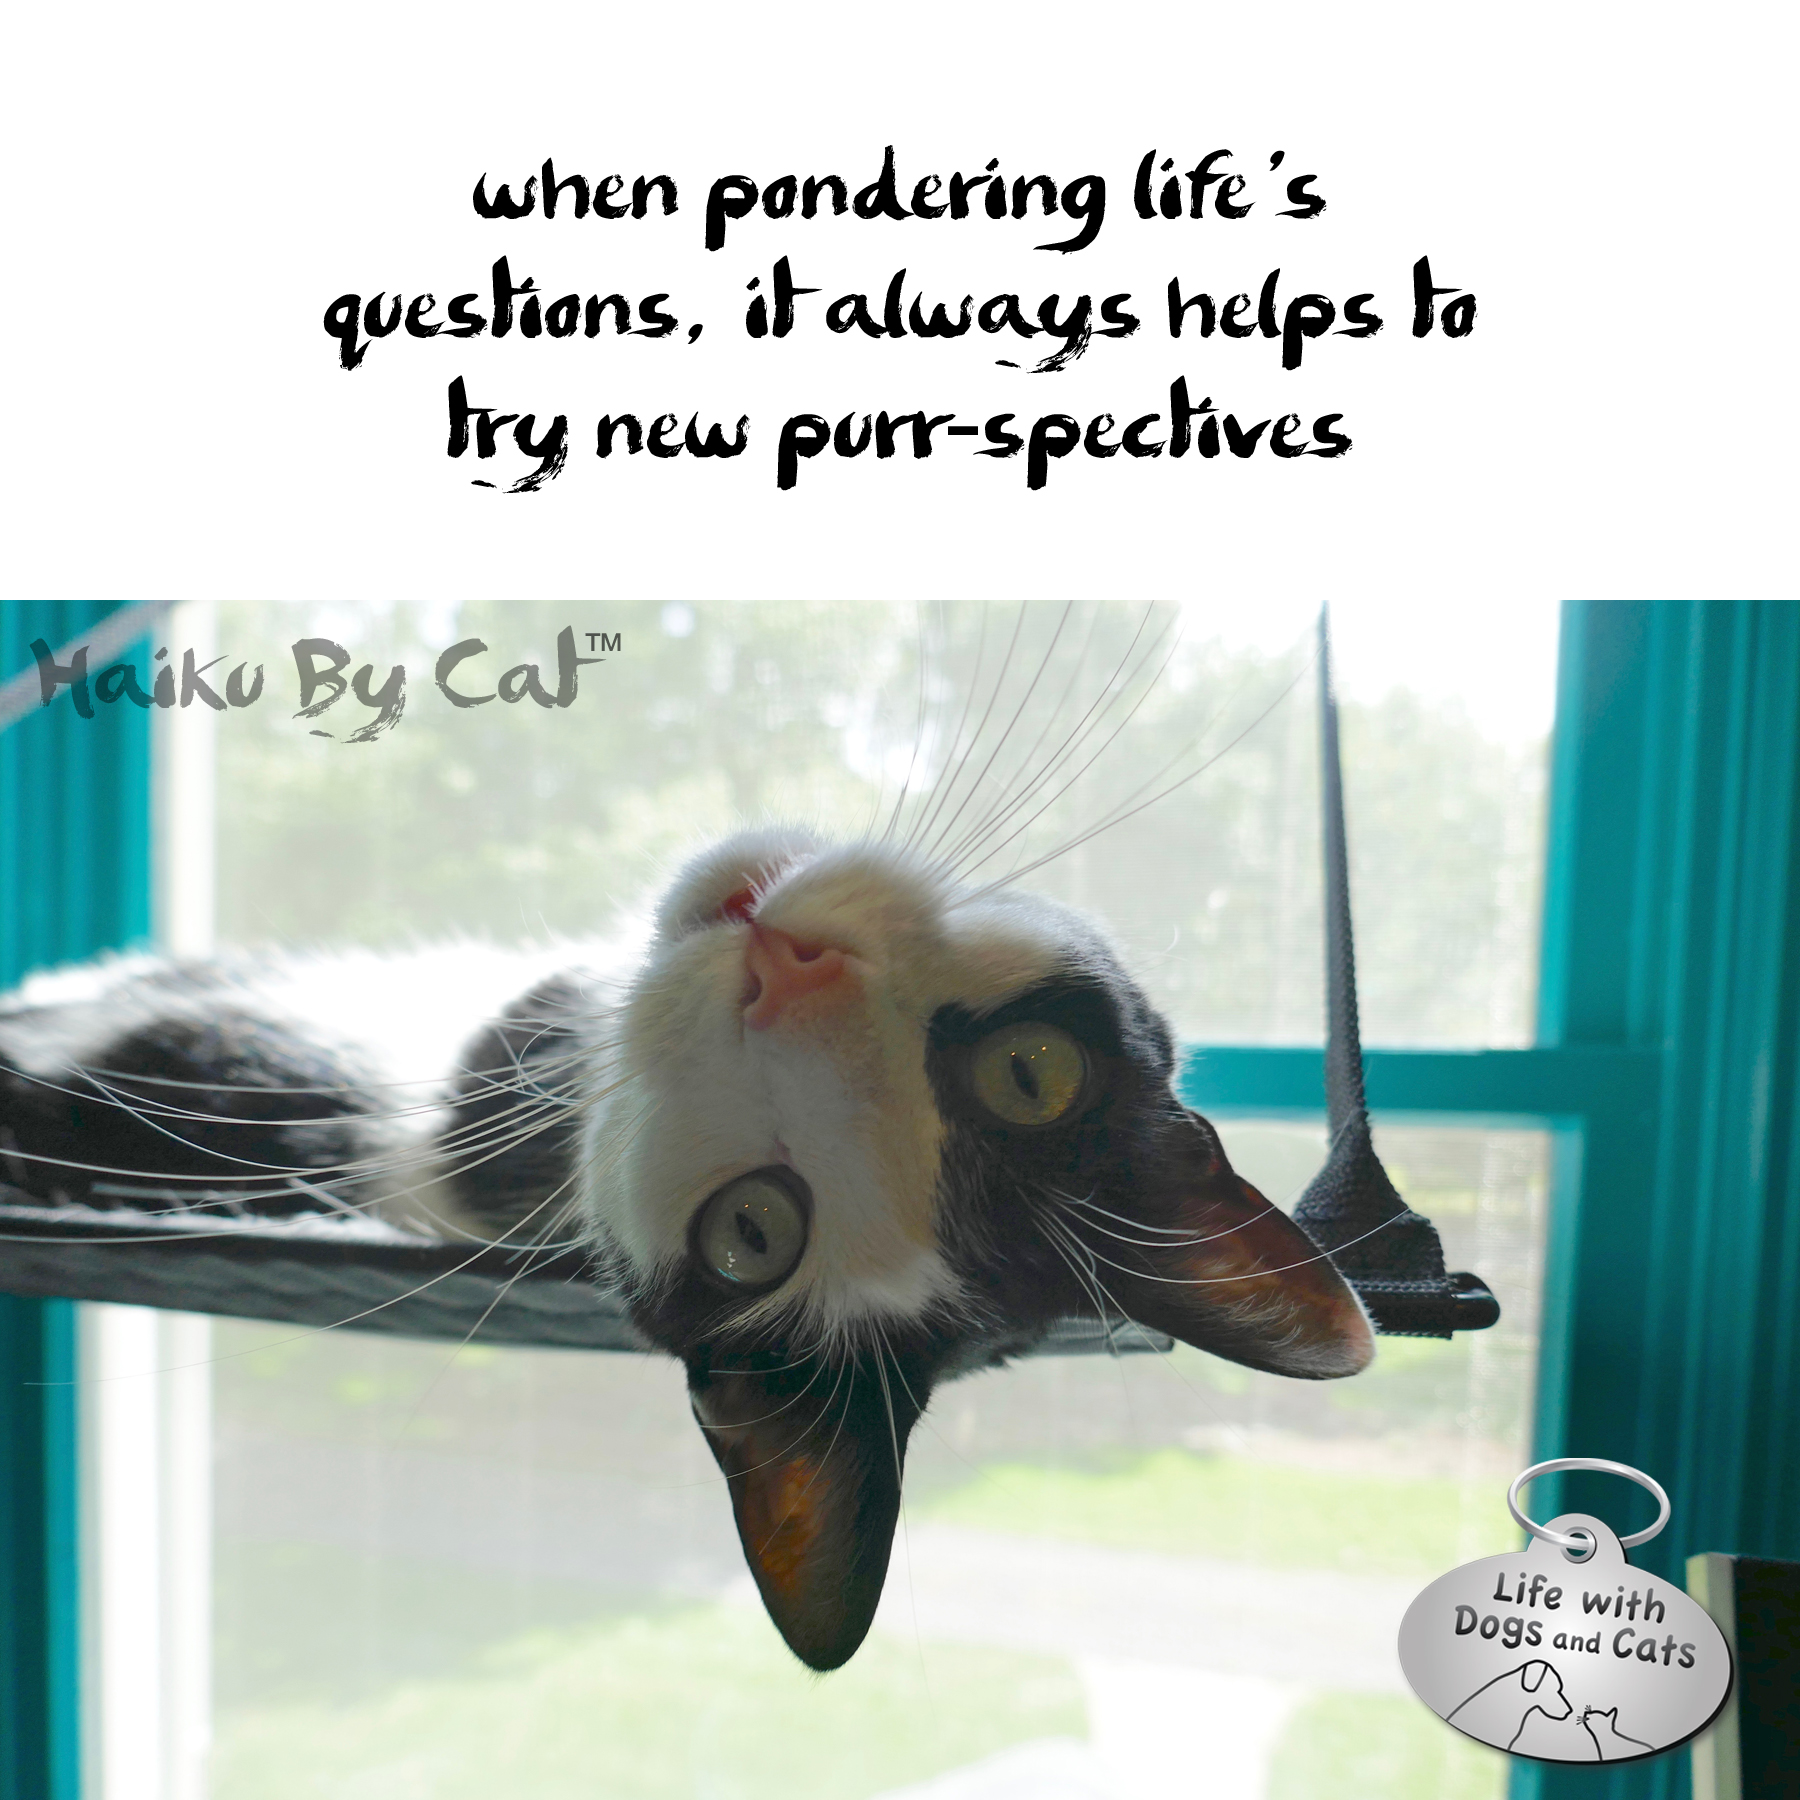 #HaikuByCat when pondering life's / questions, it always helps to / try new purr-spectives